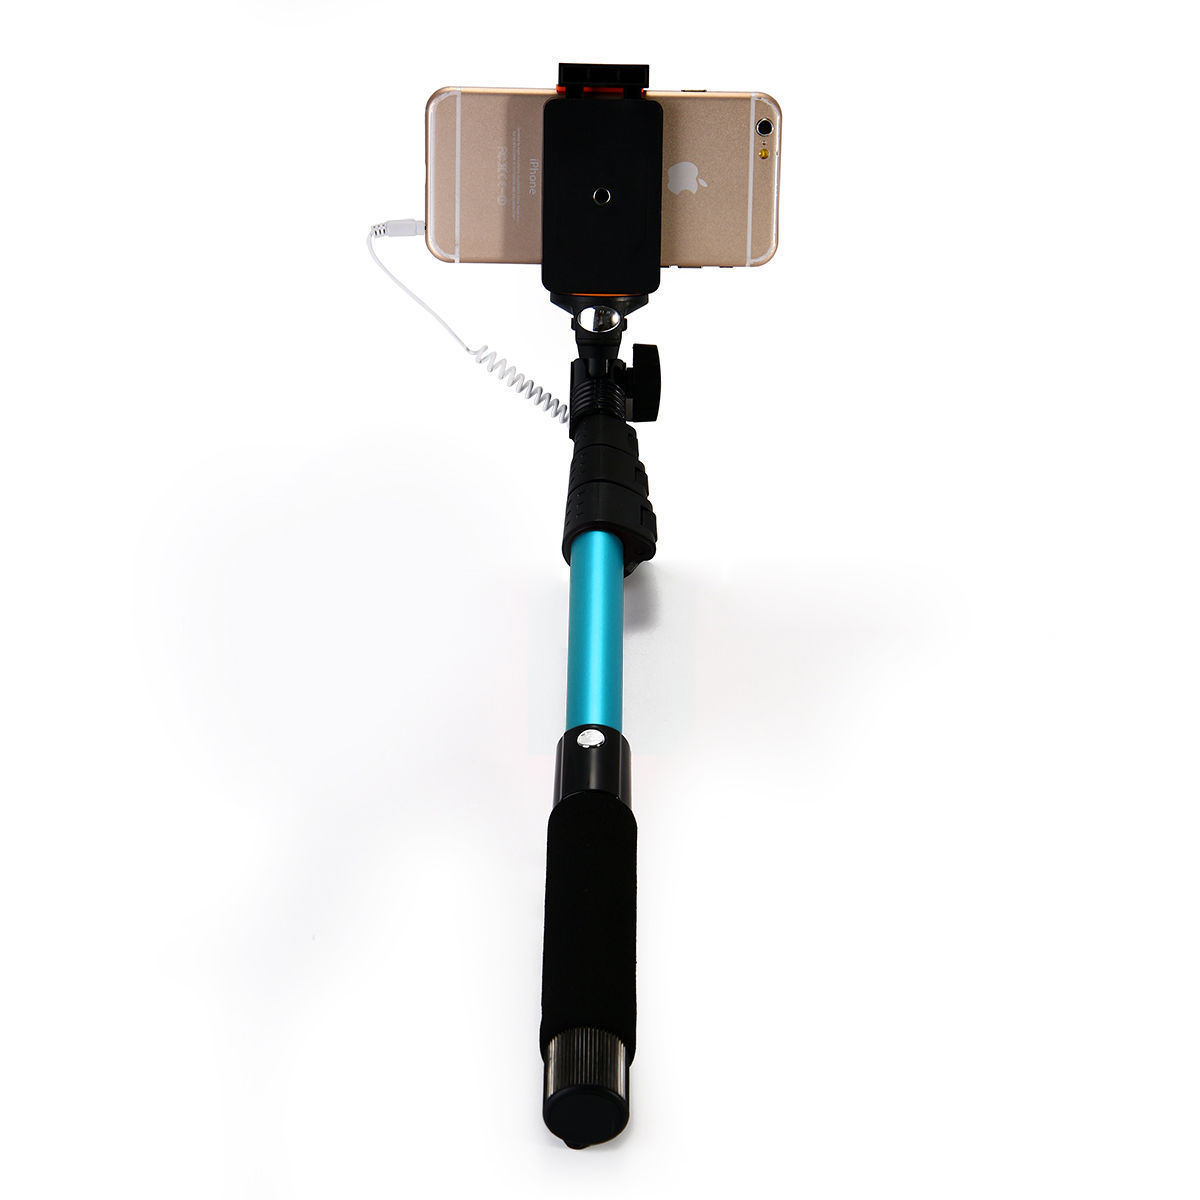 wired selfie stick extendable monopod mirror handheld for iphone 6 plus 6 5s 5c ebay. Black Bedroom Furniture Sets. Home Design Ideas